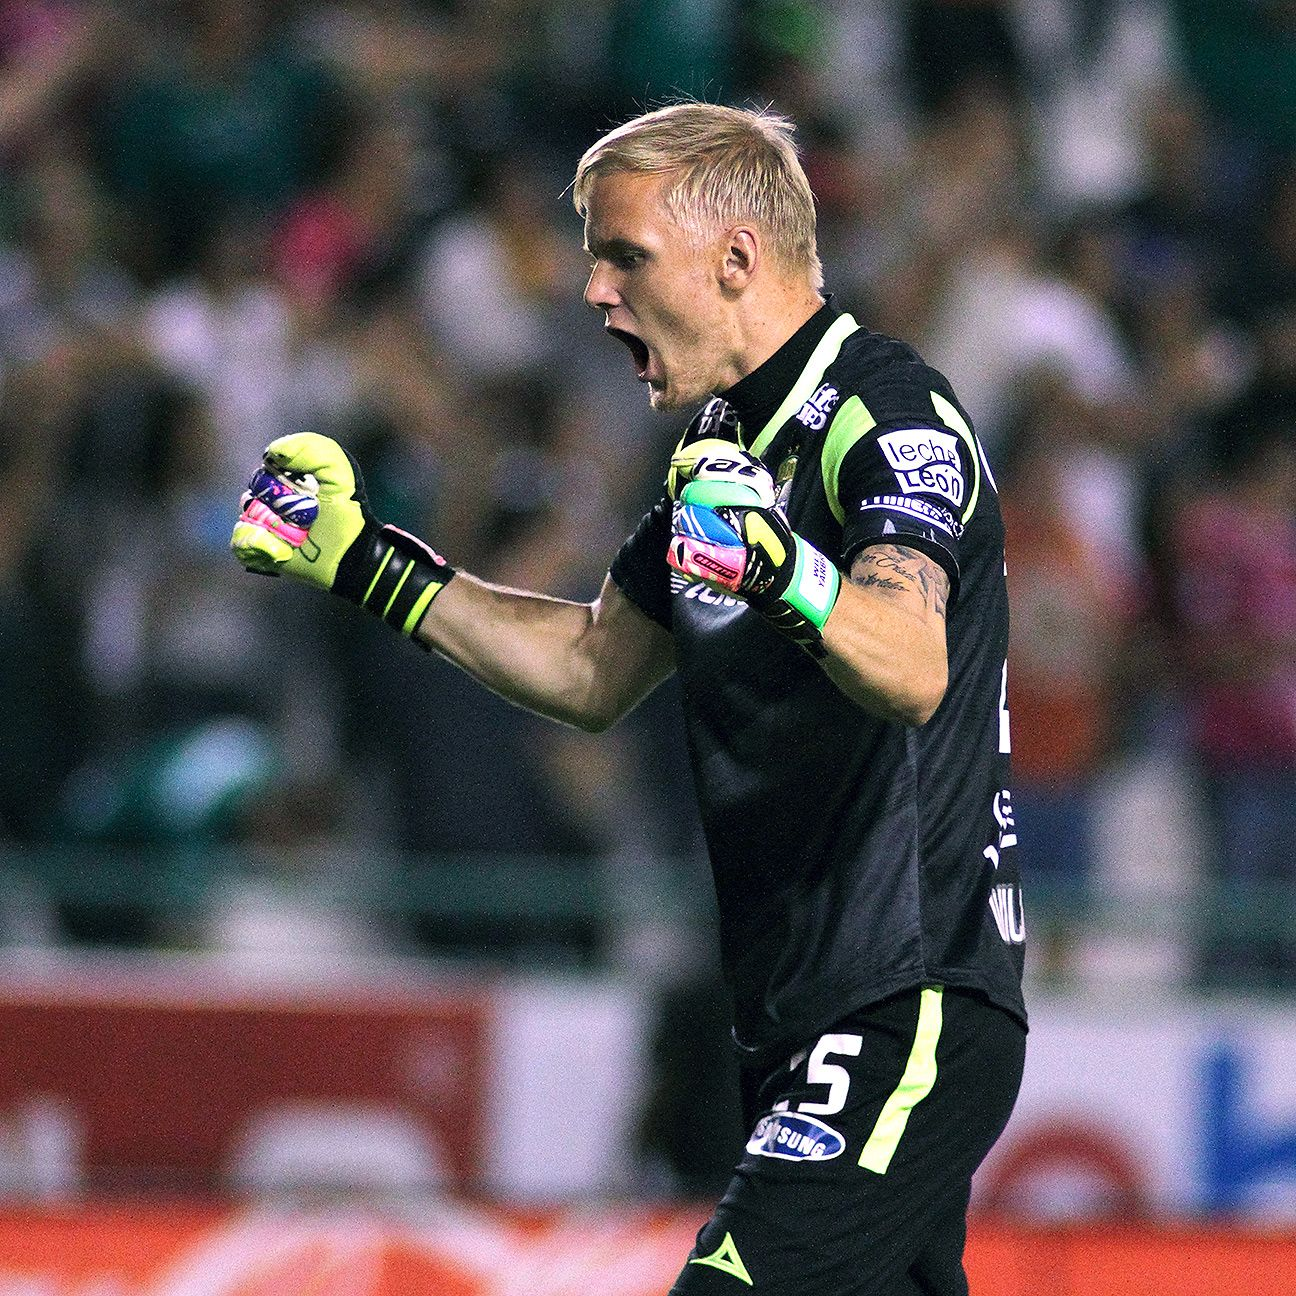 William Yarbrough and Leon will look to build off of last week's 4-0 thrashing of Morelia when they face Chiapas this weekend.